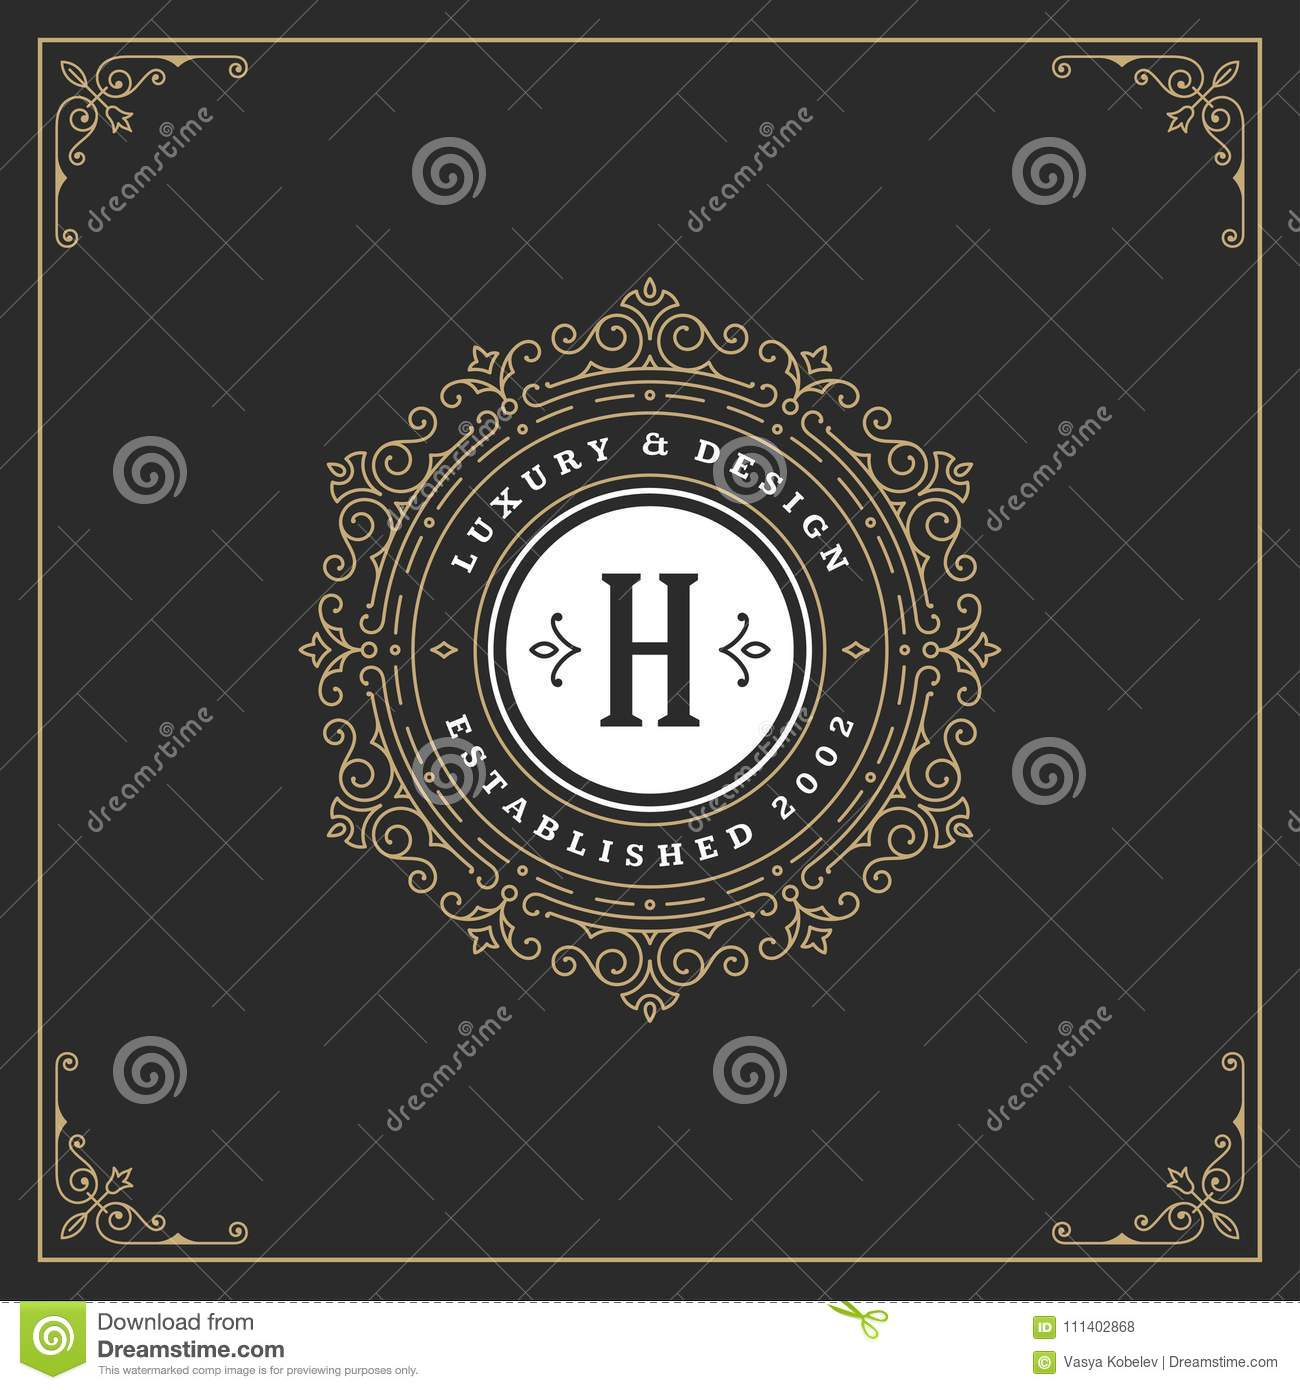 Ornament monogram logo design template vector flourishes calligraphic vintage frame.